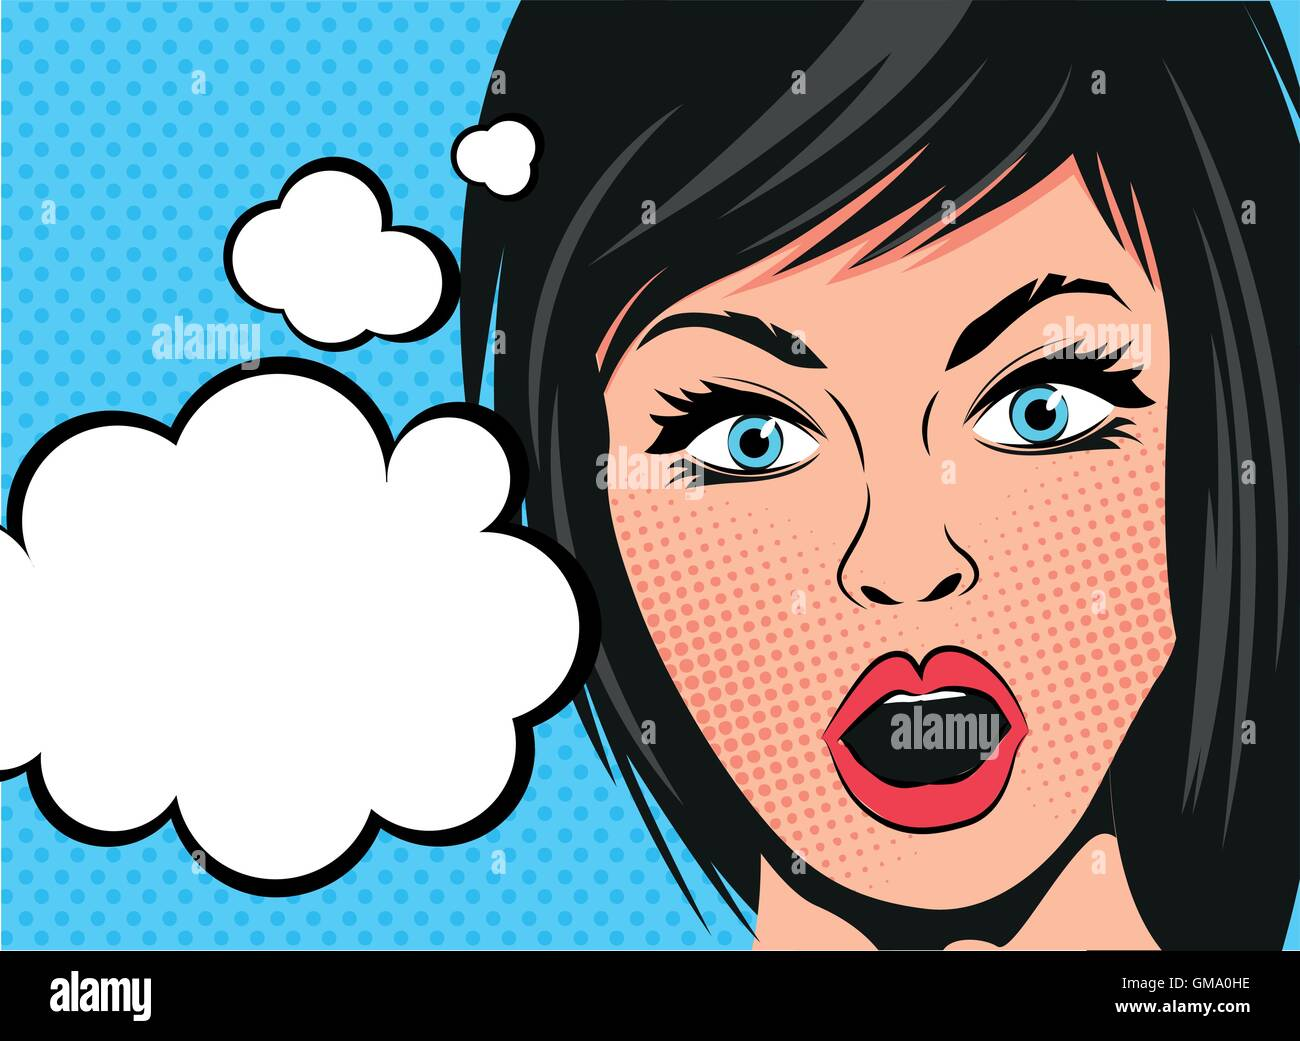 A retro cartoon woman with a shocked expression and speech bubbles. Vector illustration. Stock Vector